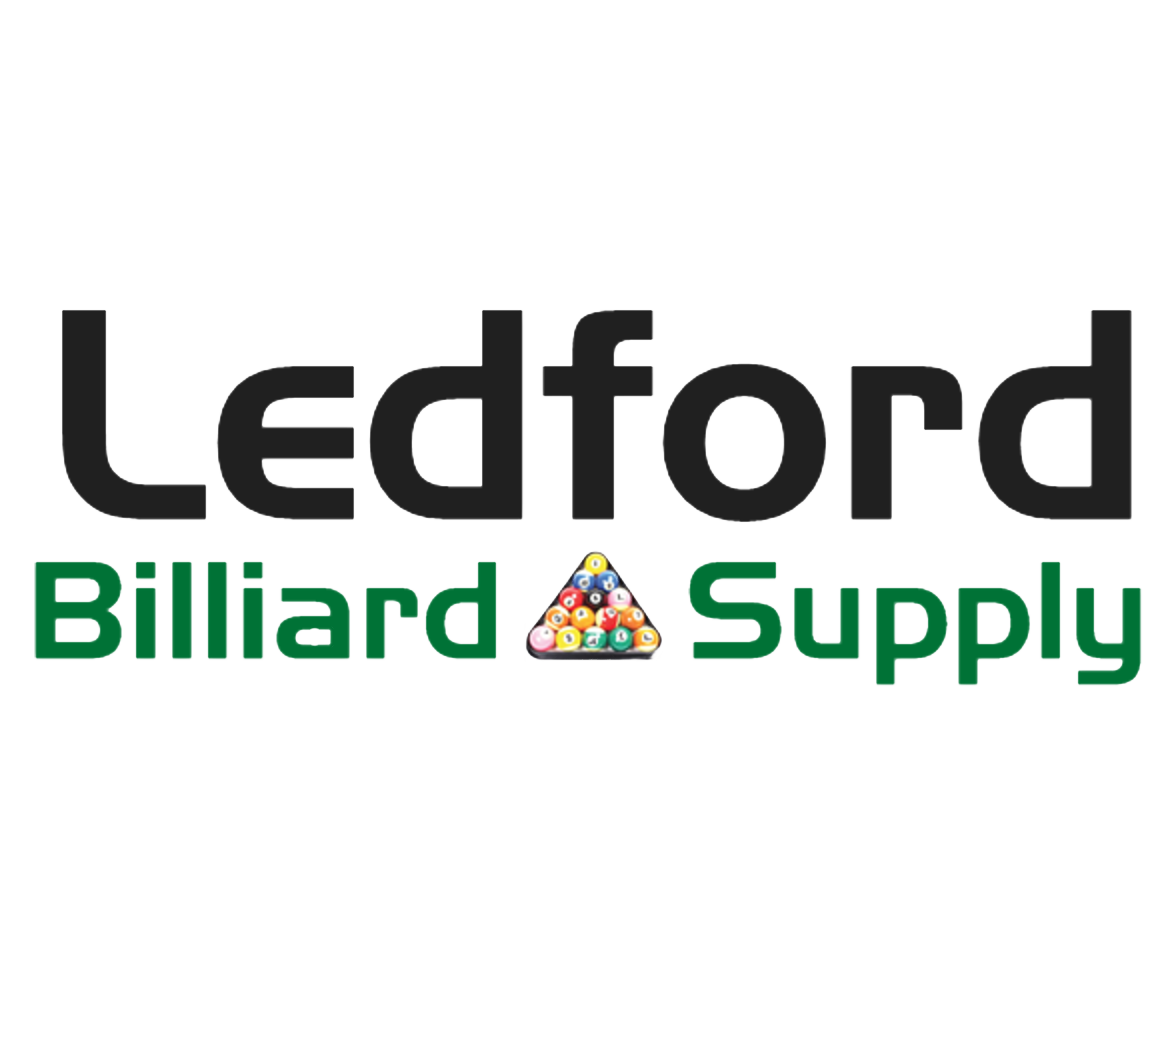 Ledford Billiard Supply Pool Tables | Shuffleboards | Gameroom Furniture & More www.ledfordbilliardsupply.com FB: @Ledfordbilliardsupply Insta: @pooltablesgvl